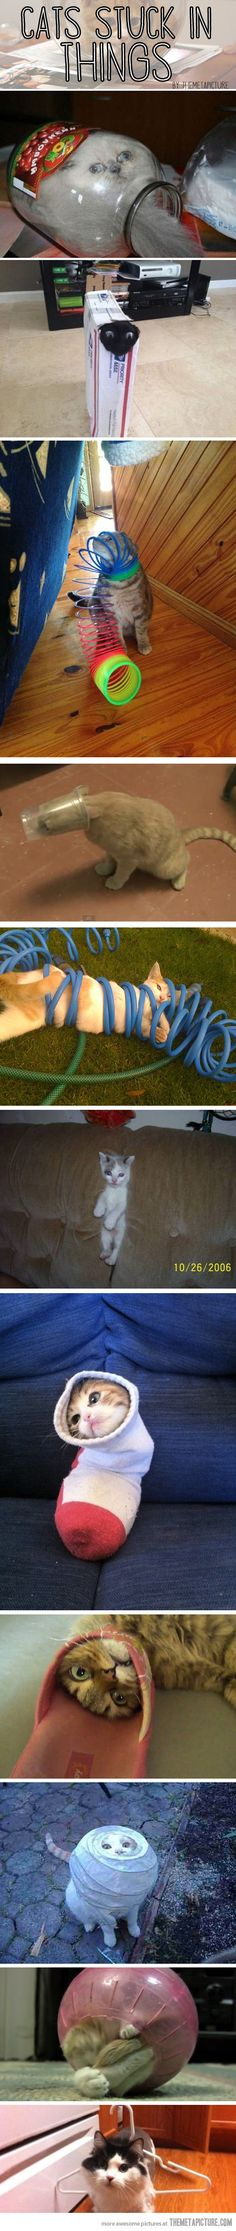 Cats stuck in things...